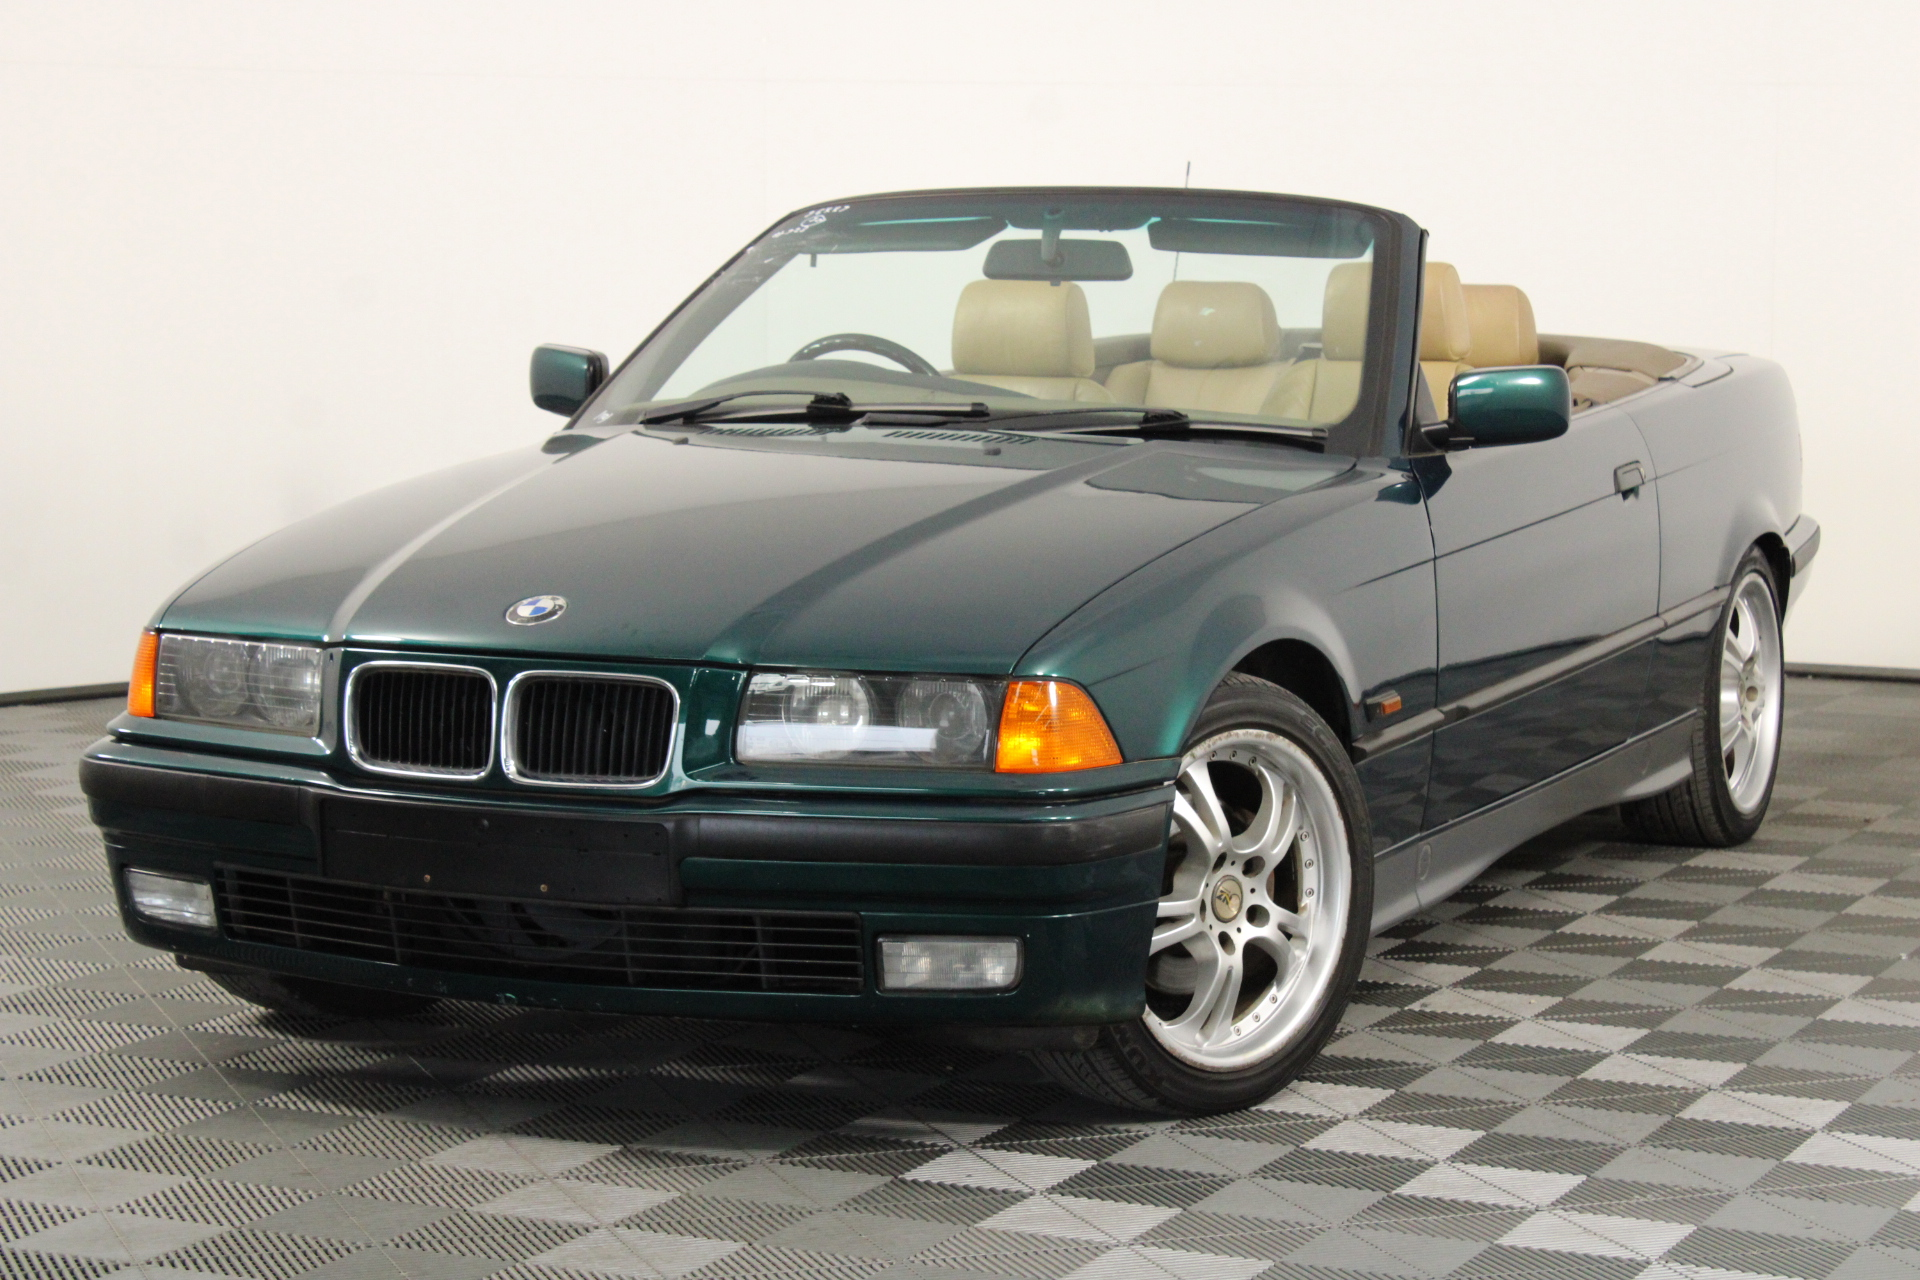 1995 BMW 325i Automatic Convertible